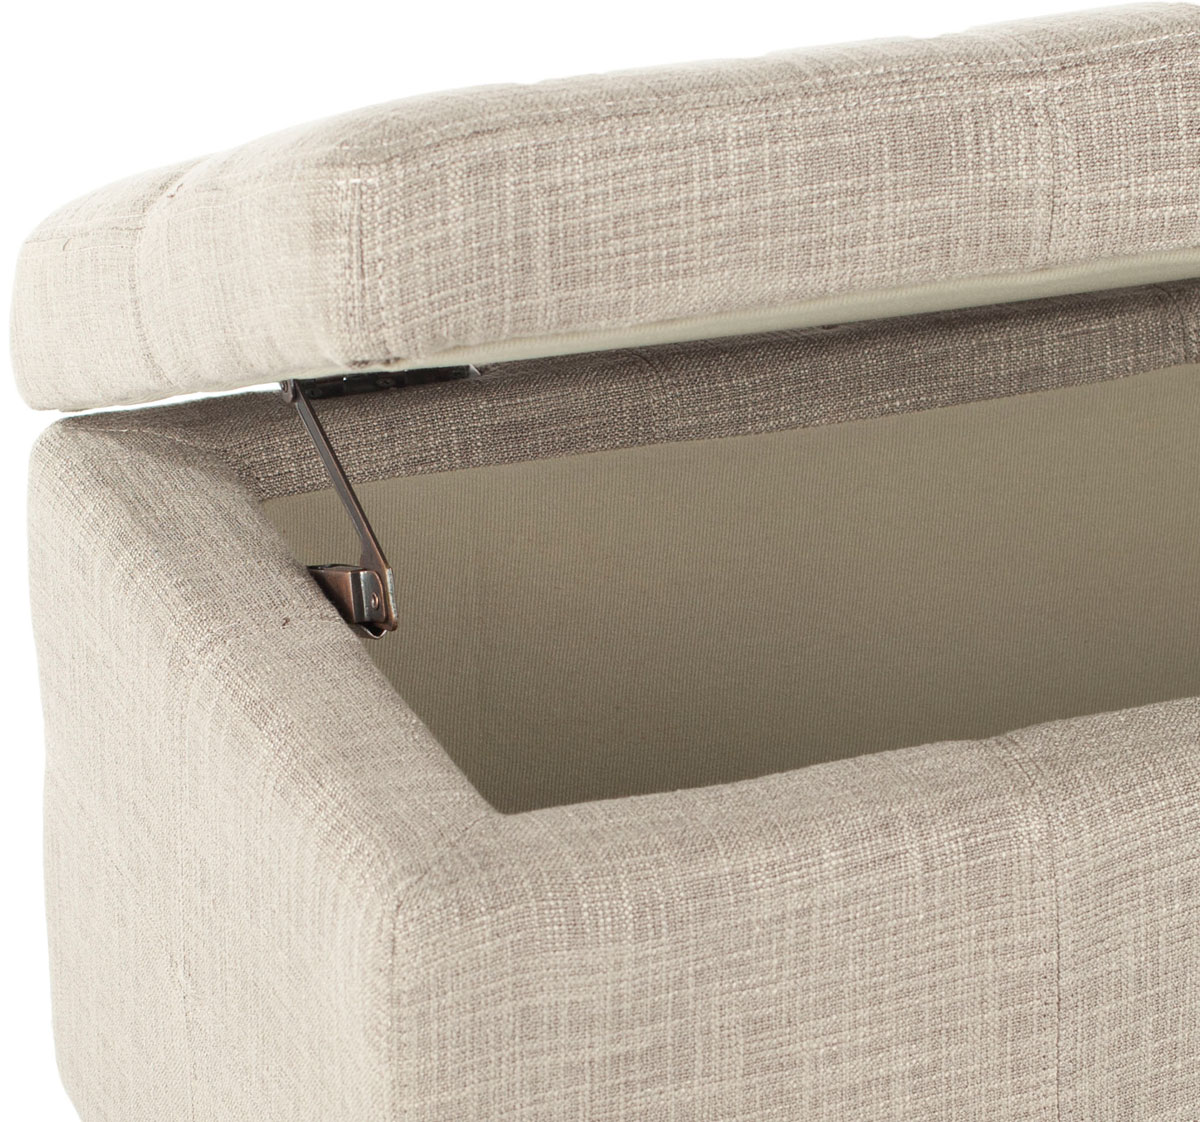 The Elegantly Appointed Large Madison Storage Ottoman Is An Interior  Indulgence, Offering Both Seating And Storage. Crafted With Stone Linen  Upholstery And ...